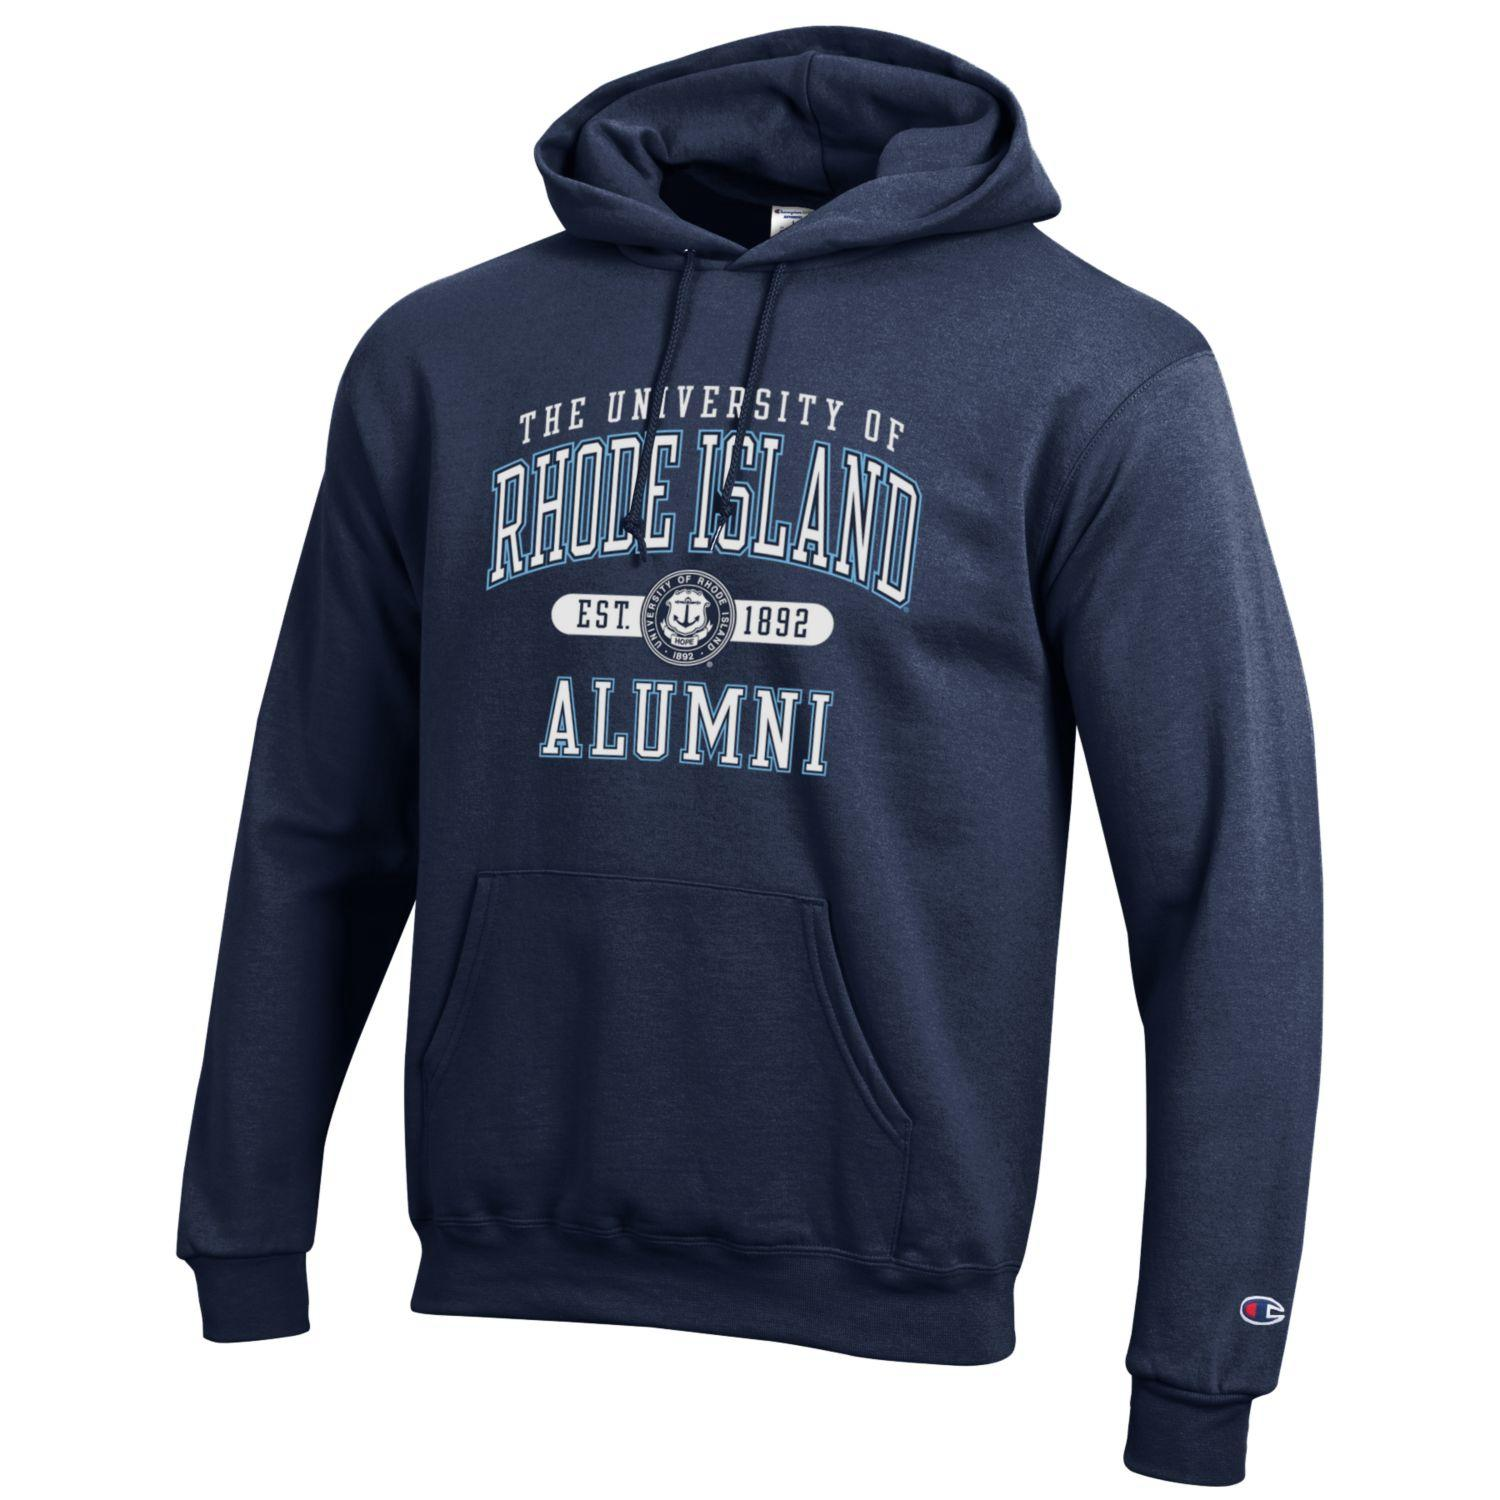 Image For Champion Alumni Eco Powerblend Hood